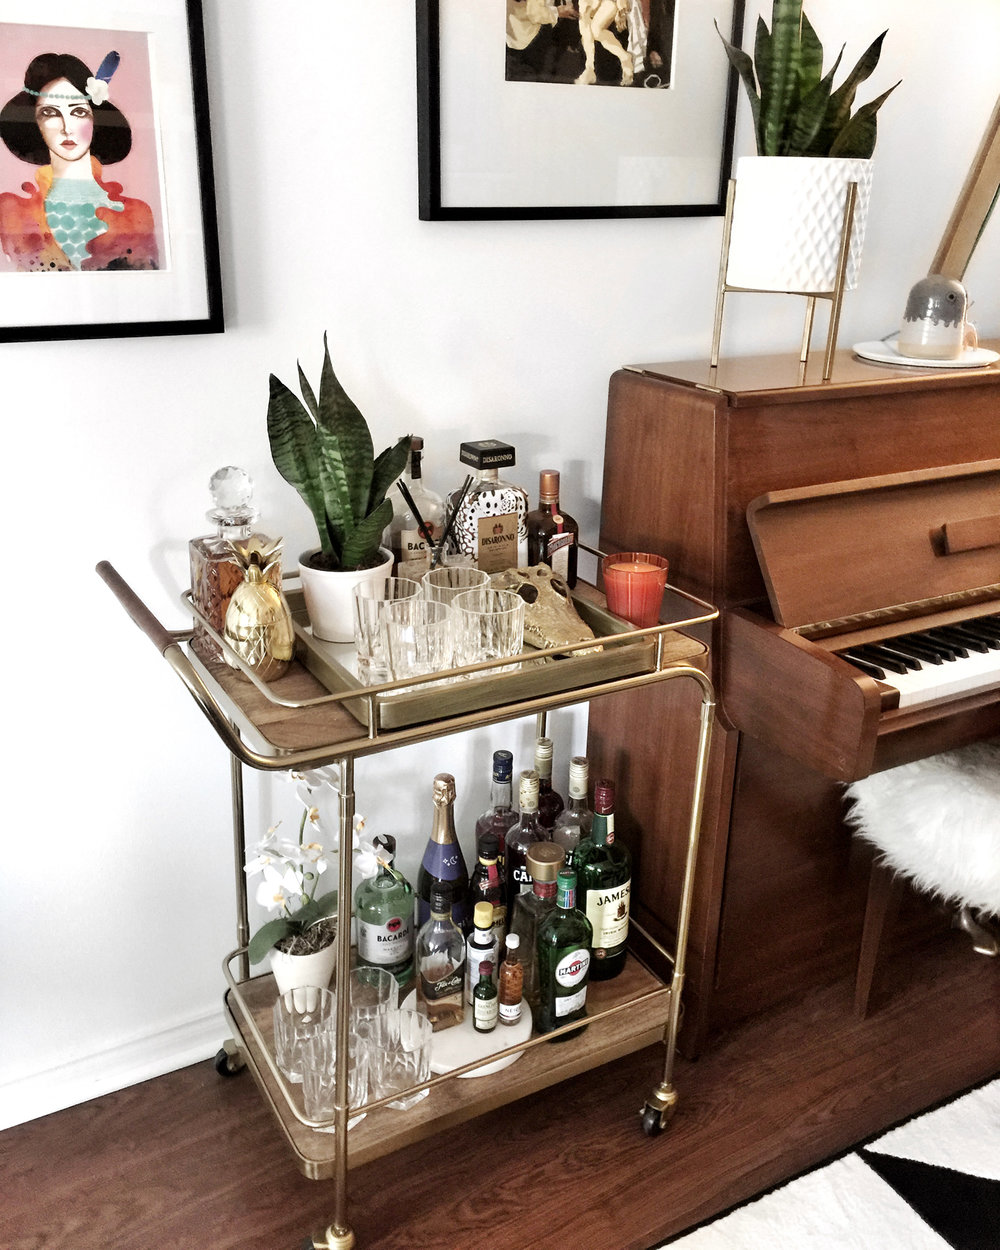 How to style a bar cart.jpg